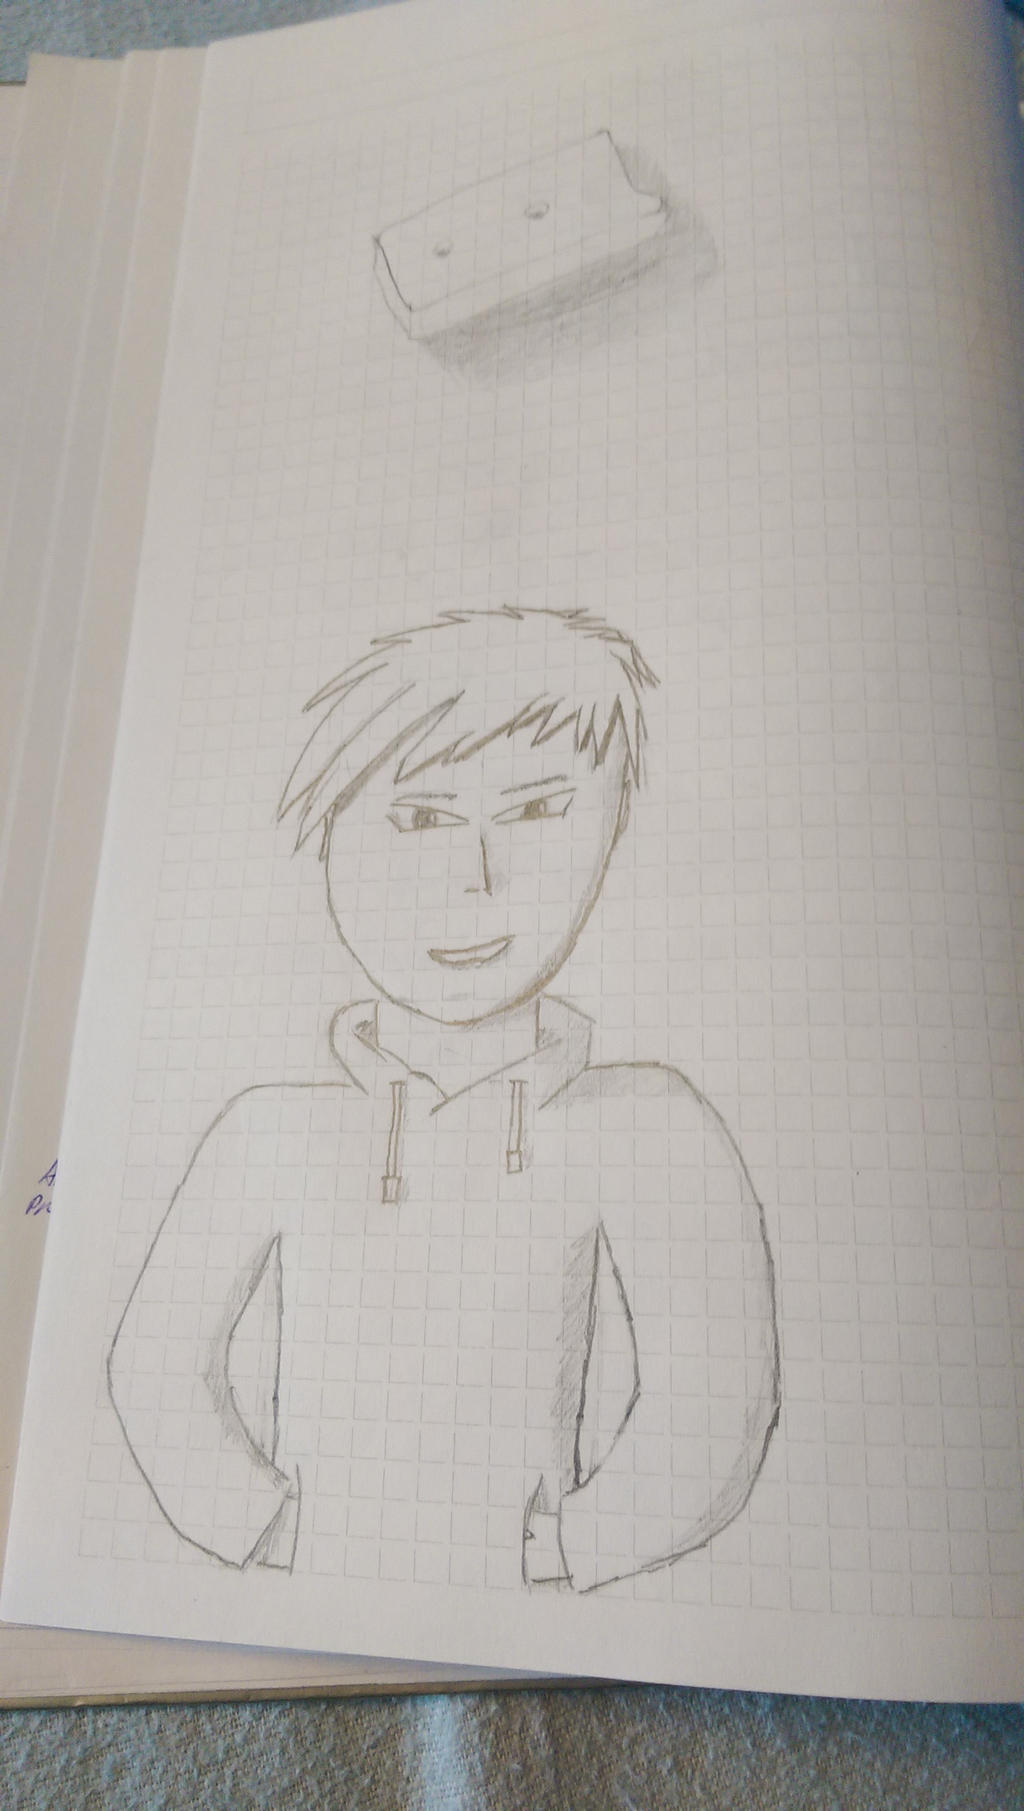 Guy with hoodie - boredome at scool by Bridge2Brain